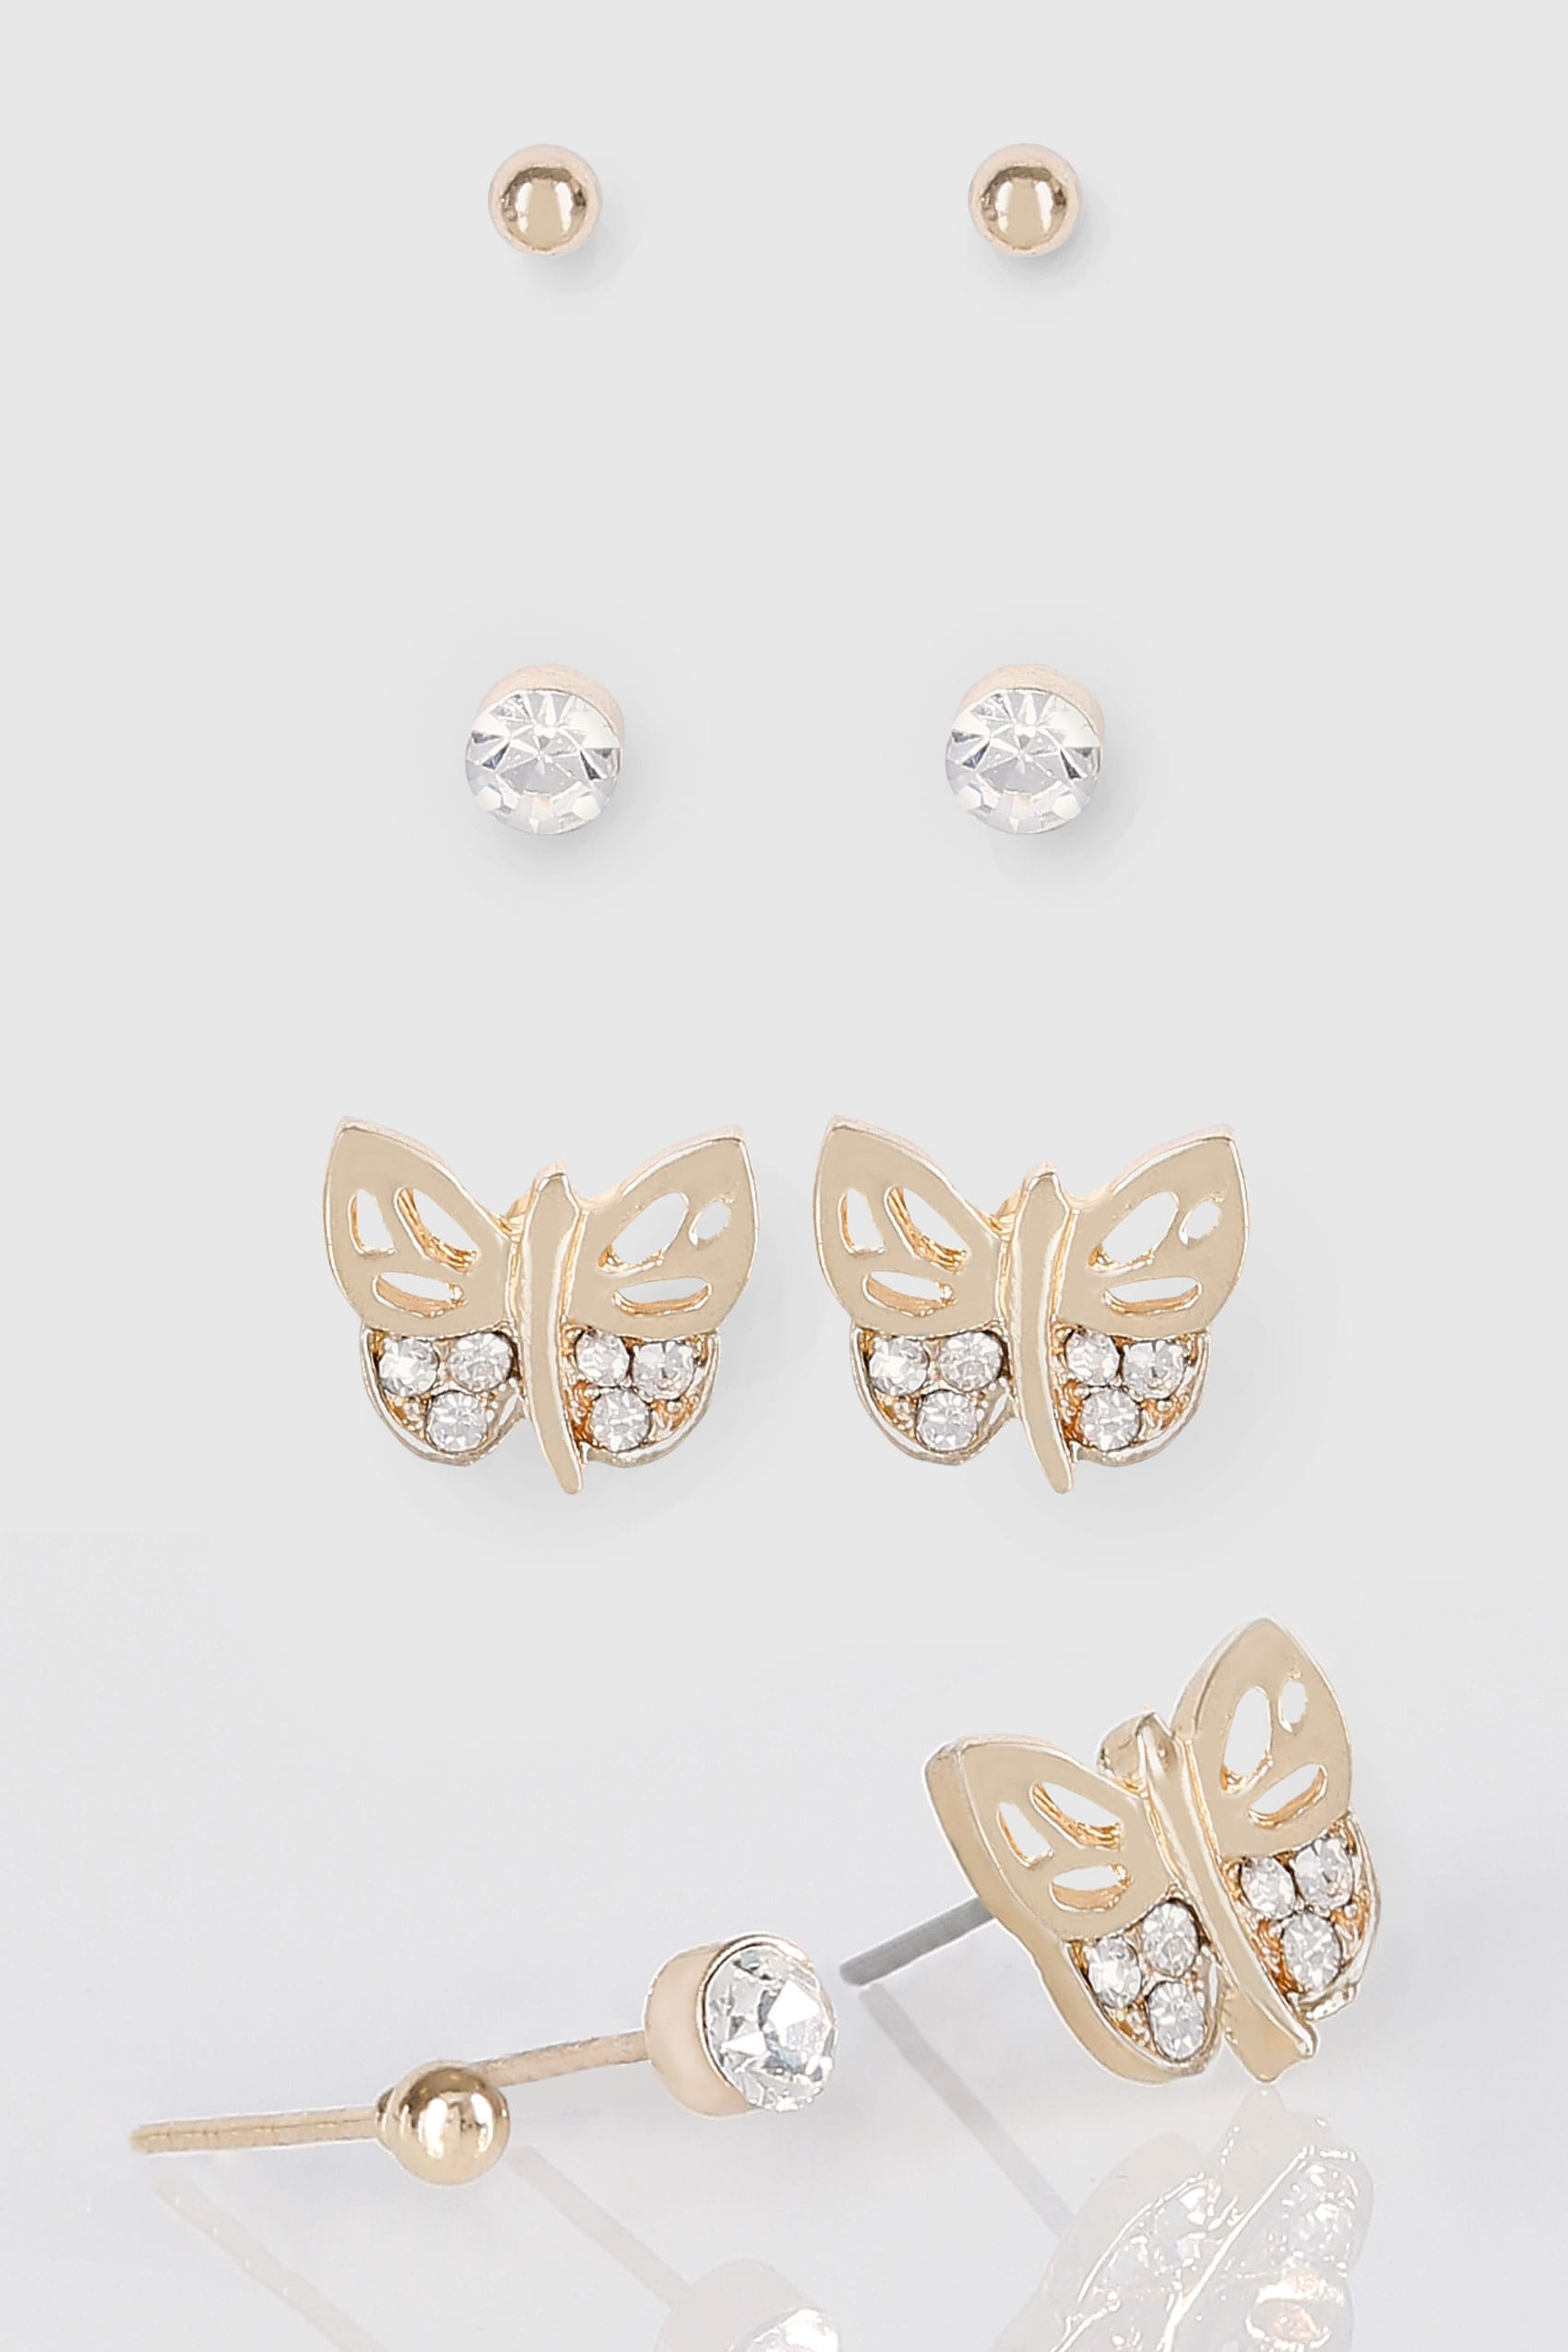 cerulean stud earrings shop re cara jewellery jewelry pretty courage so cotter boutique min